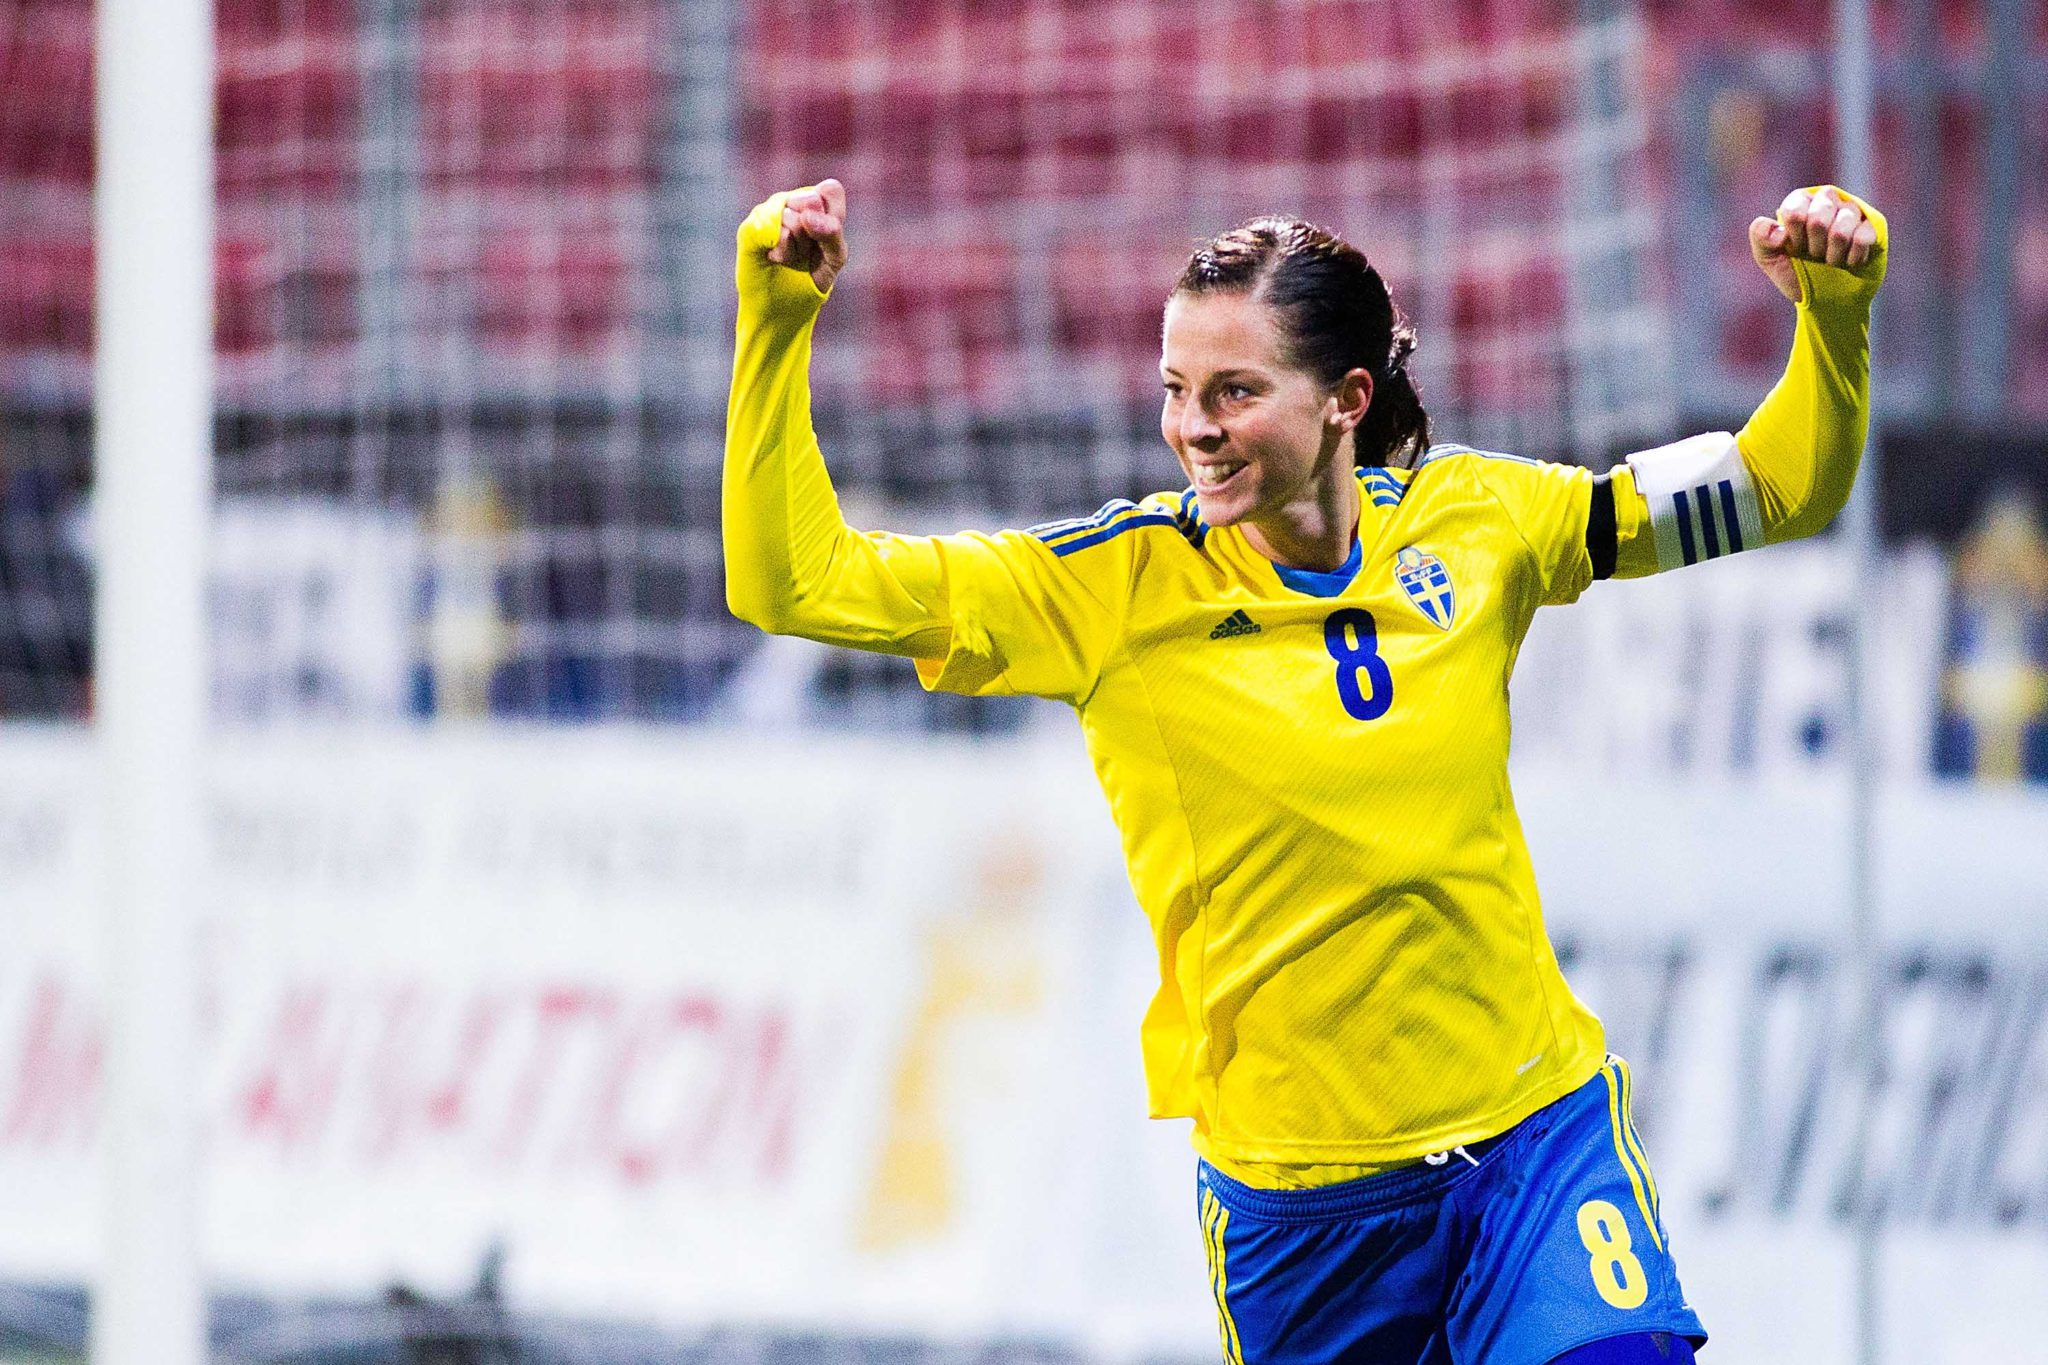 Lotta Schelin and Sweden advanced to the EURO 2017 quarterfinals despite losing to Italy. (Getty Images)